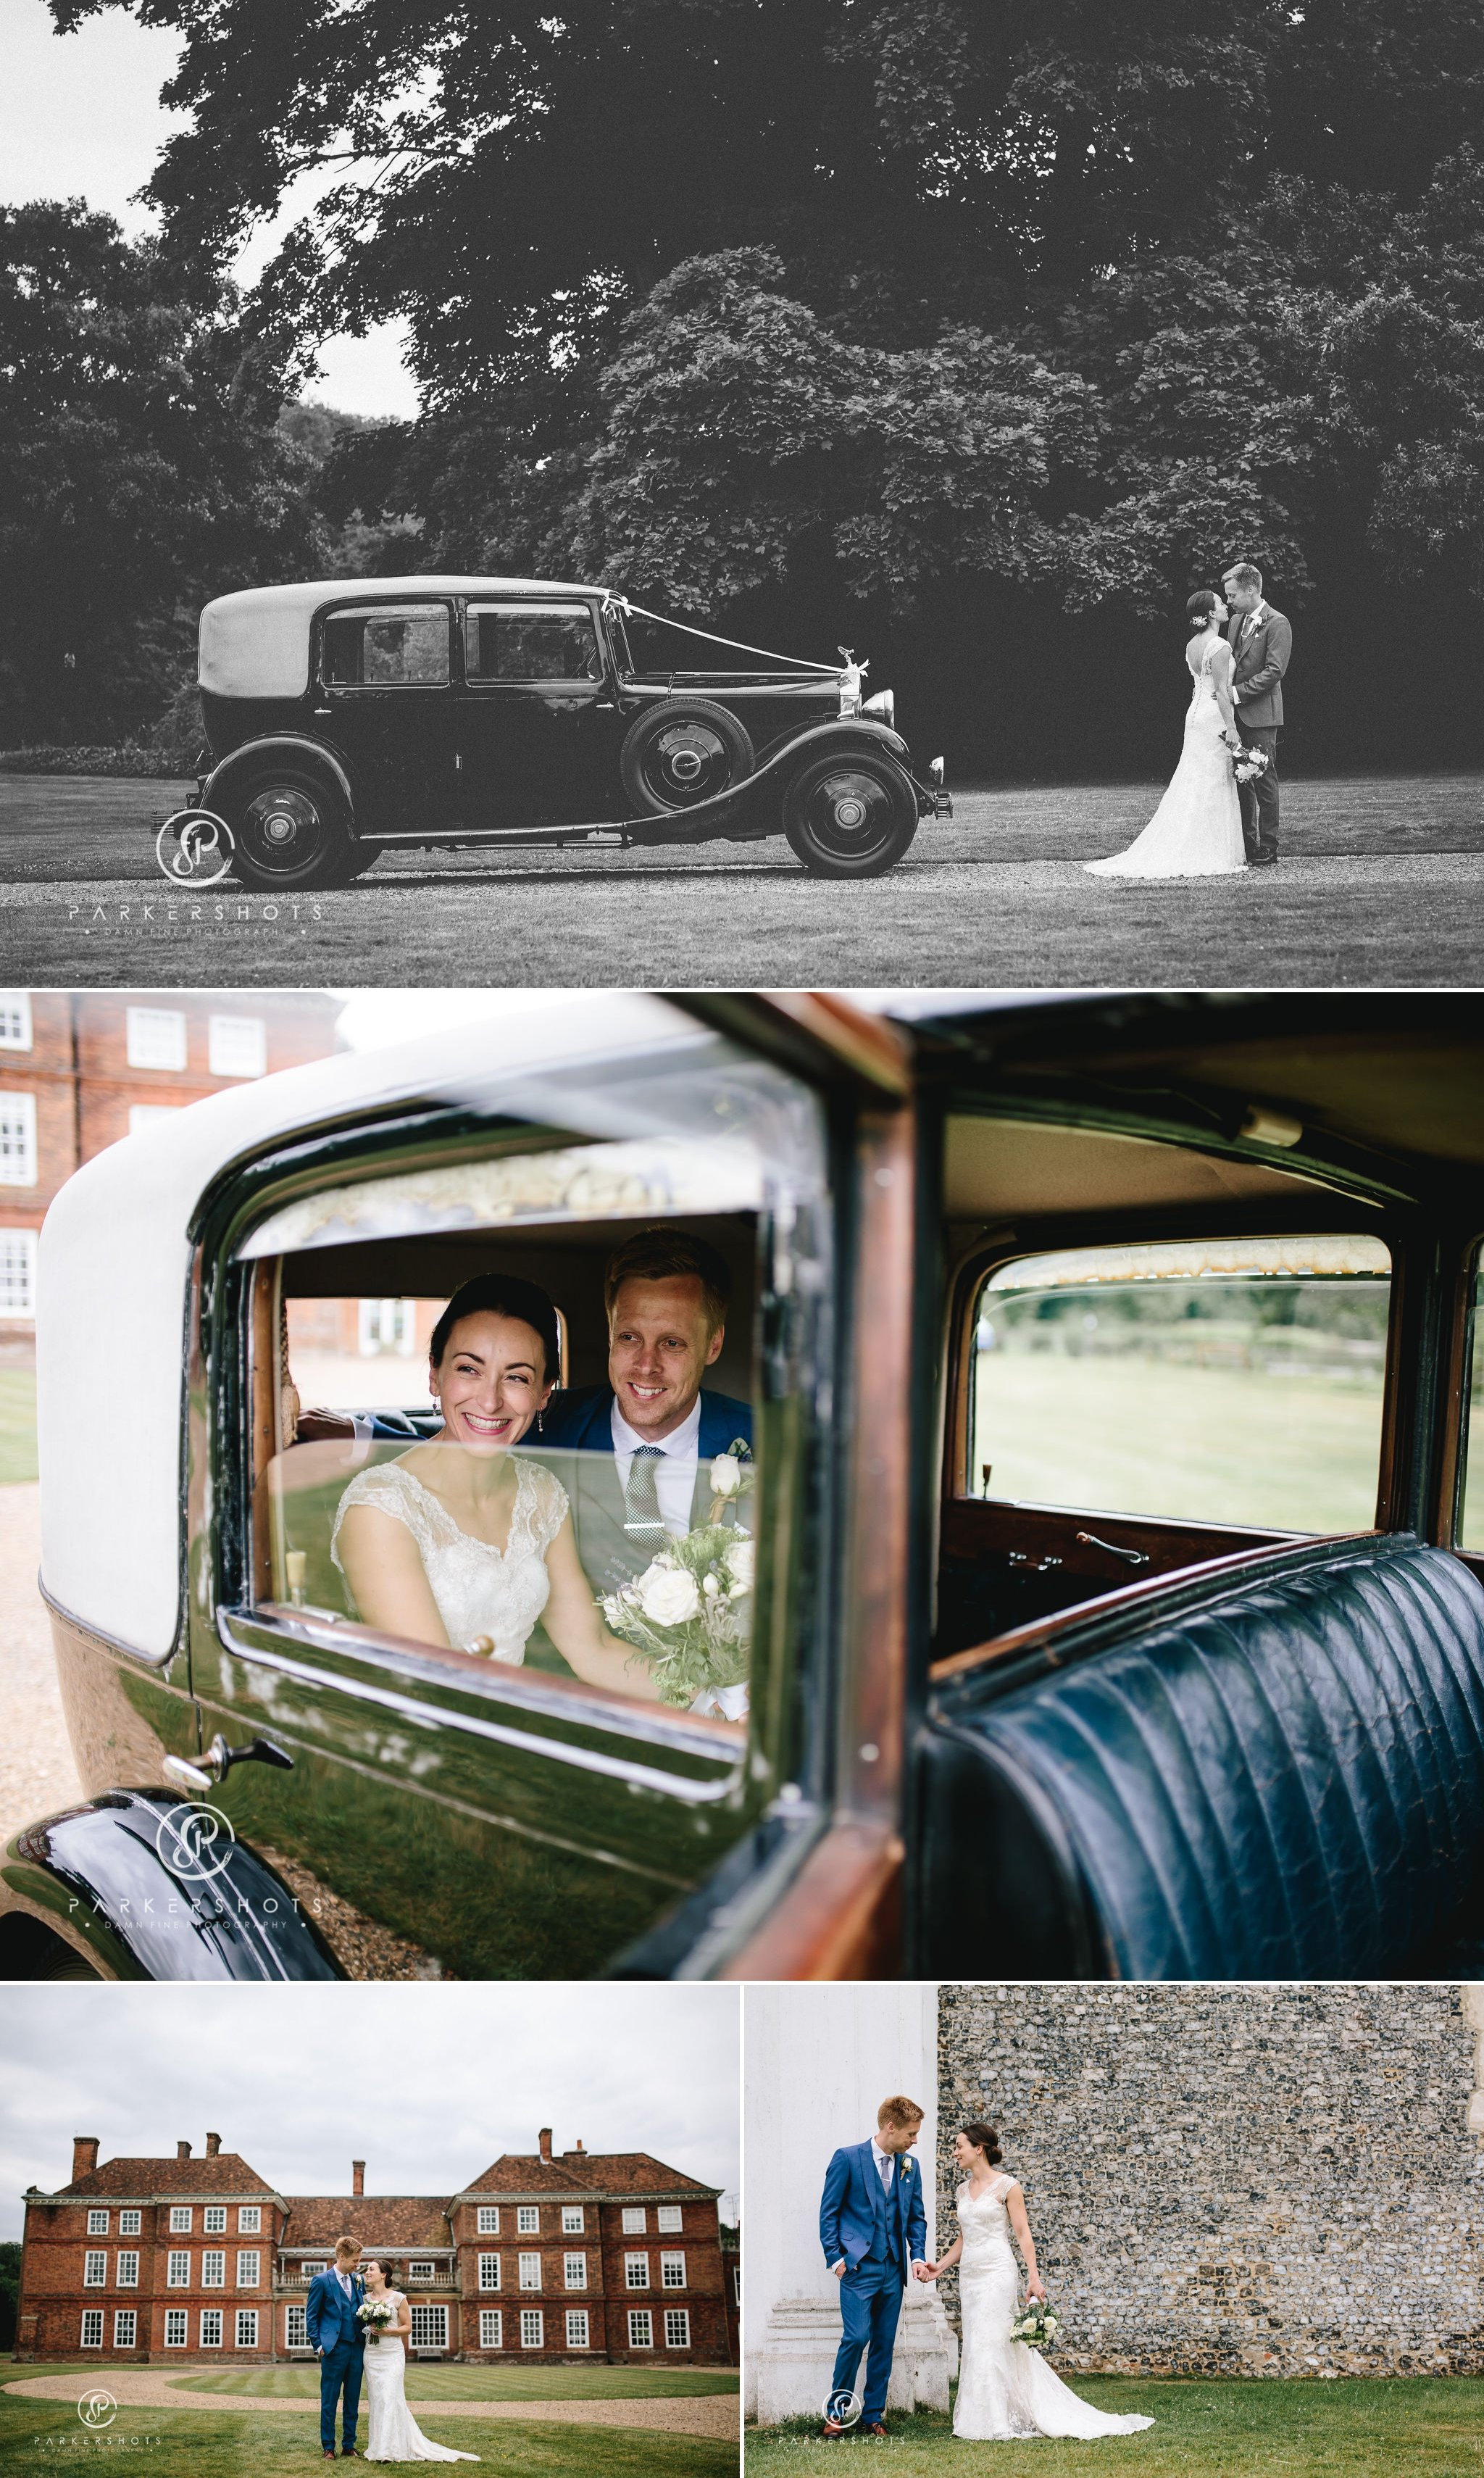 Portraits of bride and groom by Lullingstone Castle wedding photographer